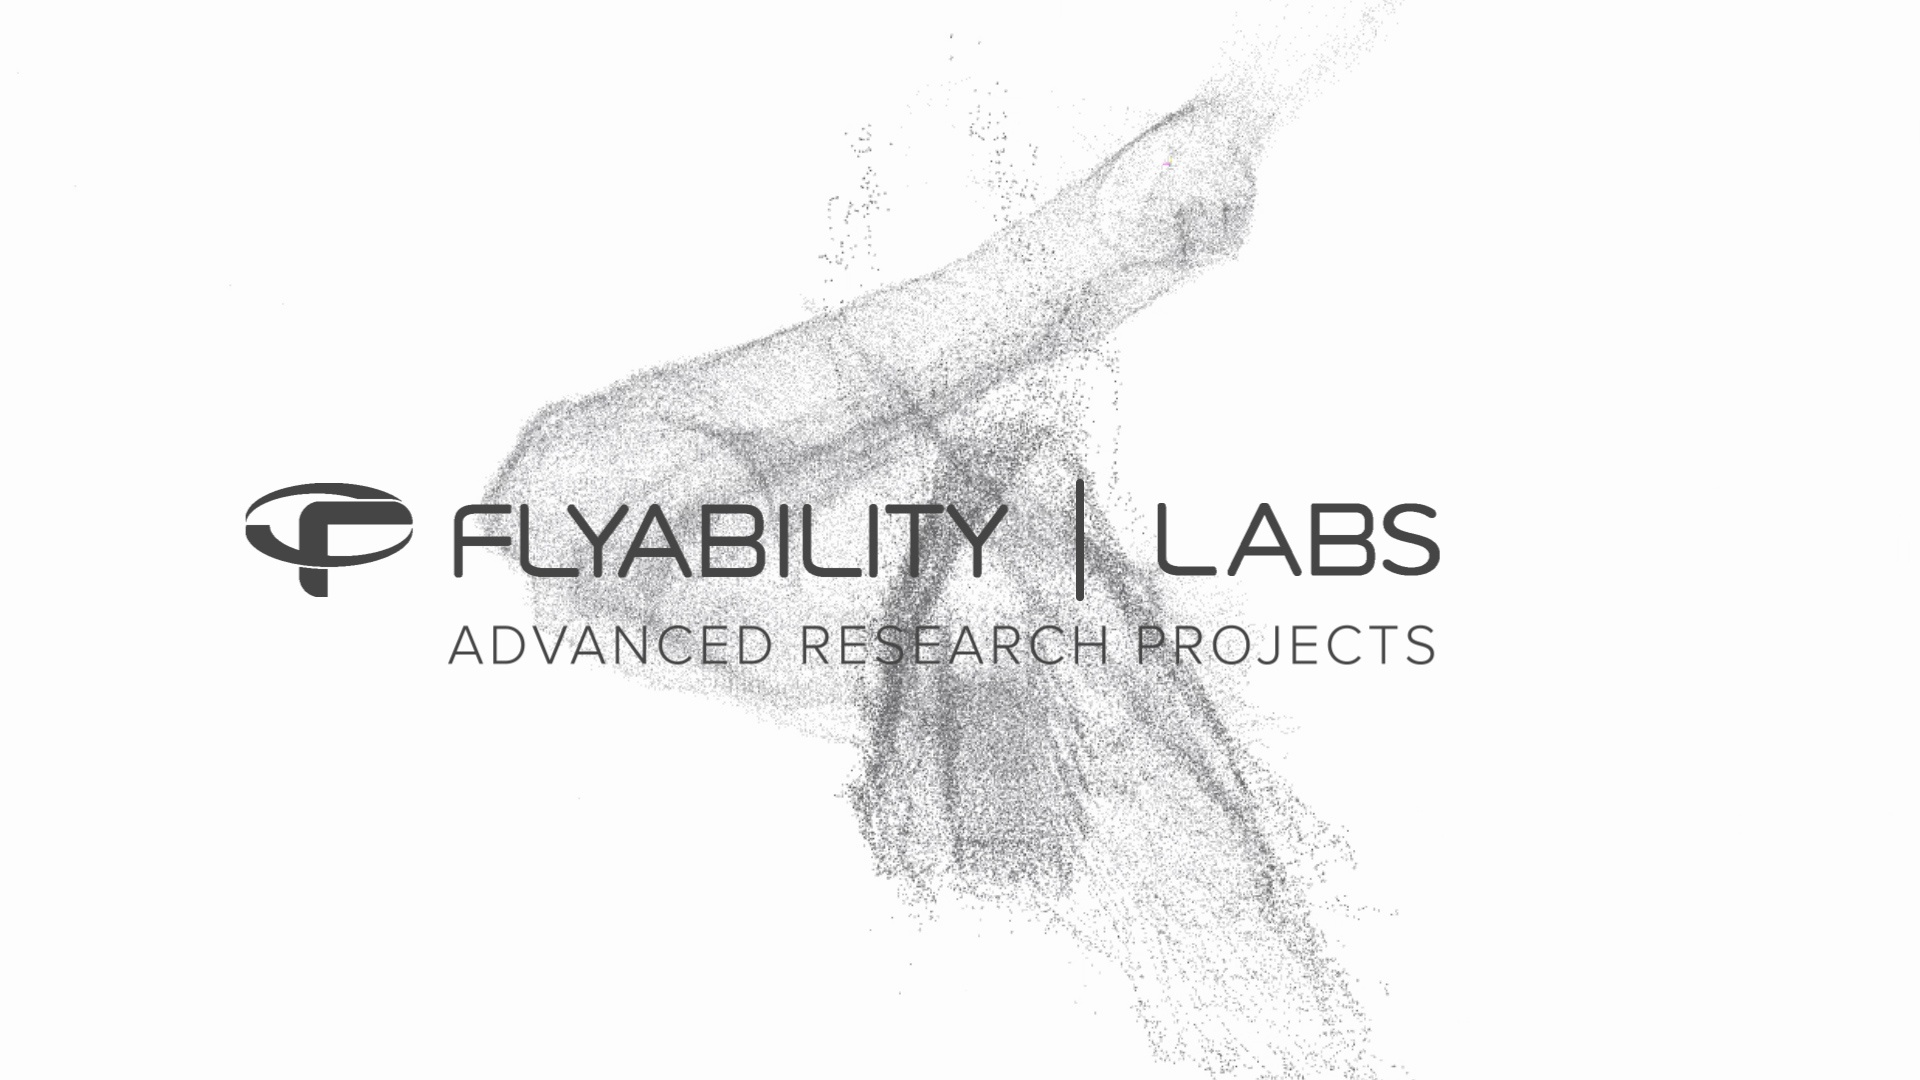 flyability-labs-video-cover